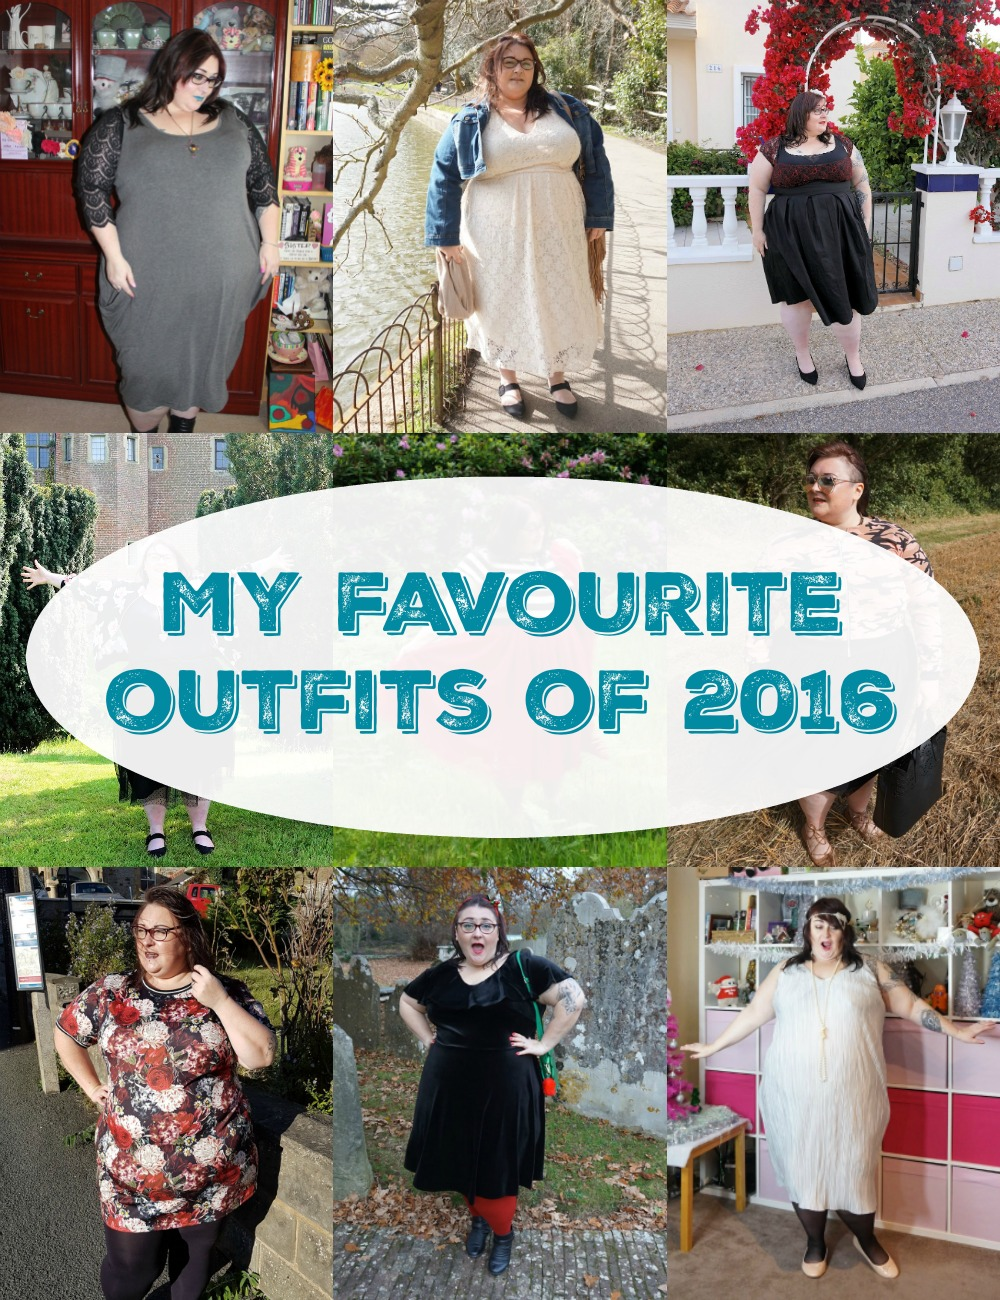 XLOVELEAHX-My-favourite-outfits-of-2016 ROUND UP RETROSPECTIVE // WWW.XLOVELEAHX.CO.UK